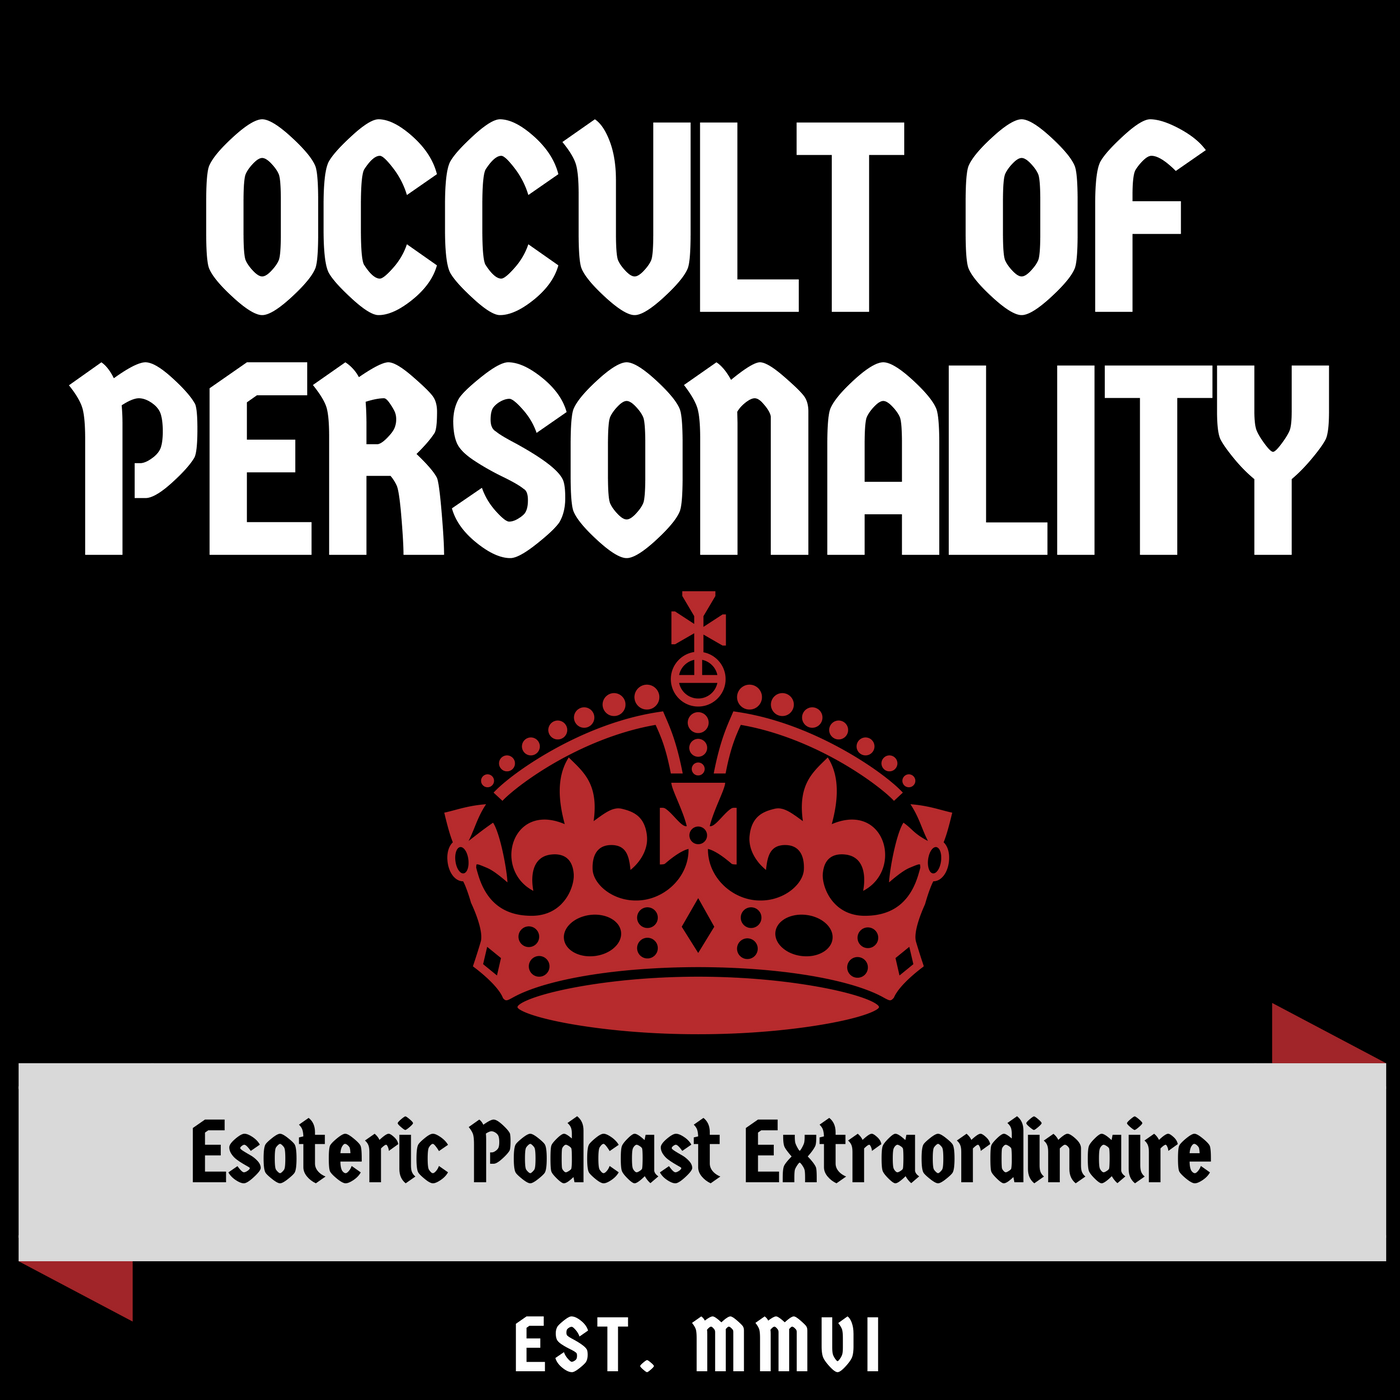 Occult of Personality podcast on Apple Podcasts